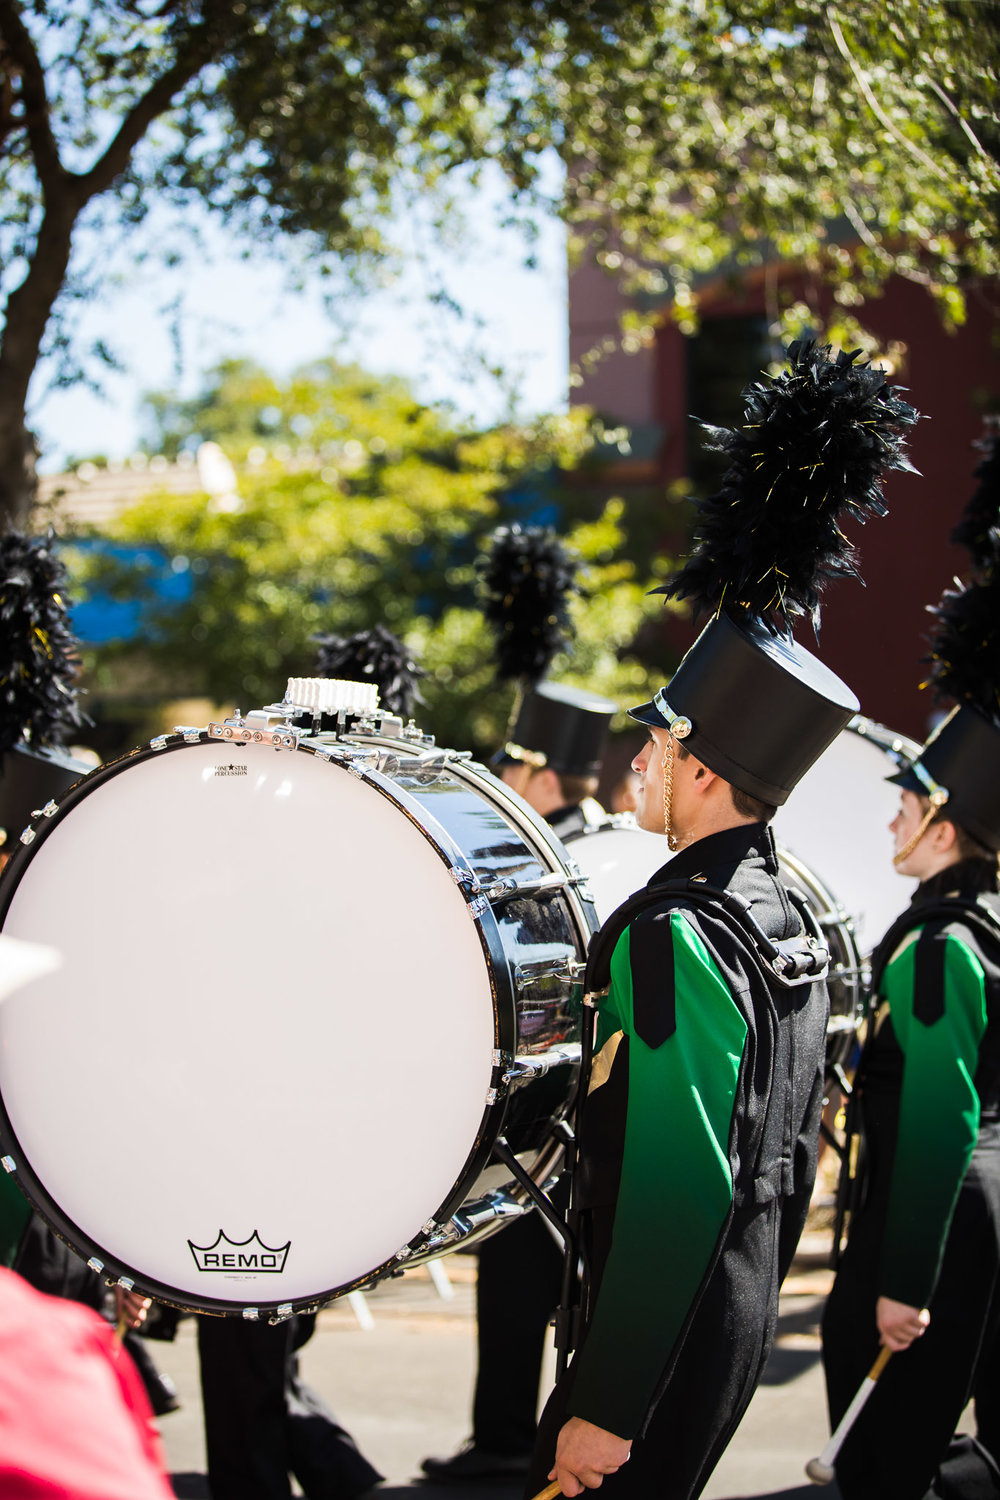 Archer_Inspired_Photography_Morgan_Hill_California_4th_of_july_parade-57.jpg